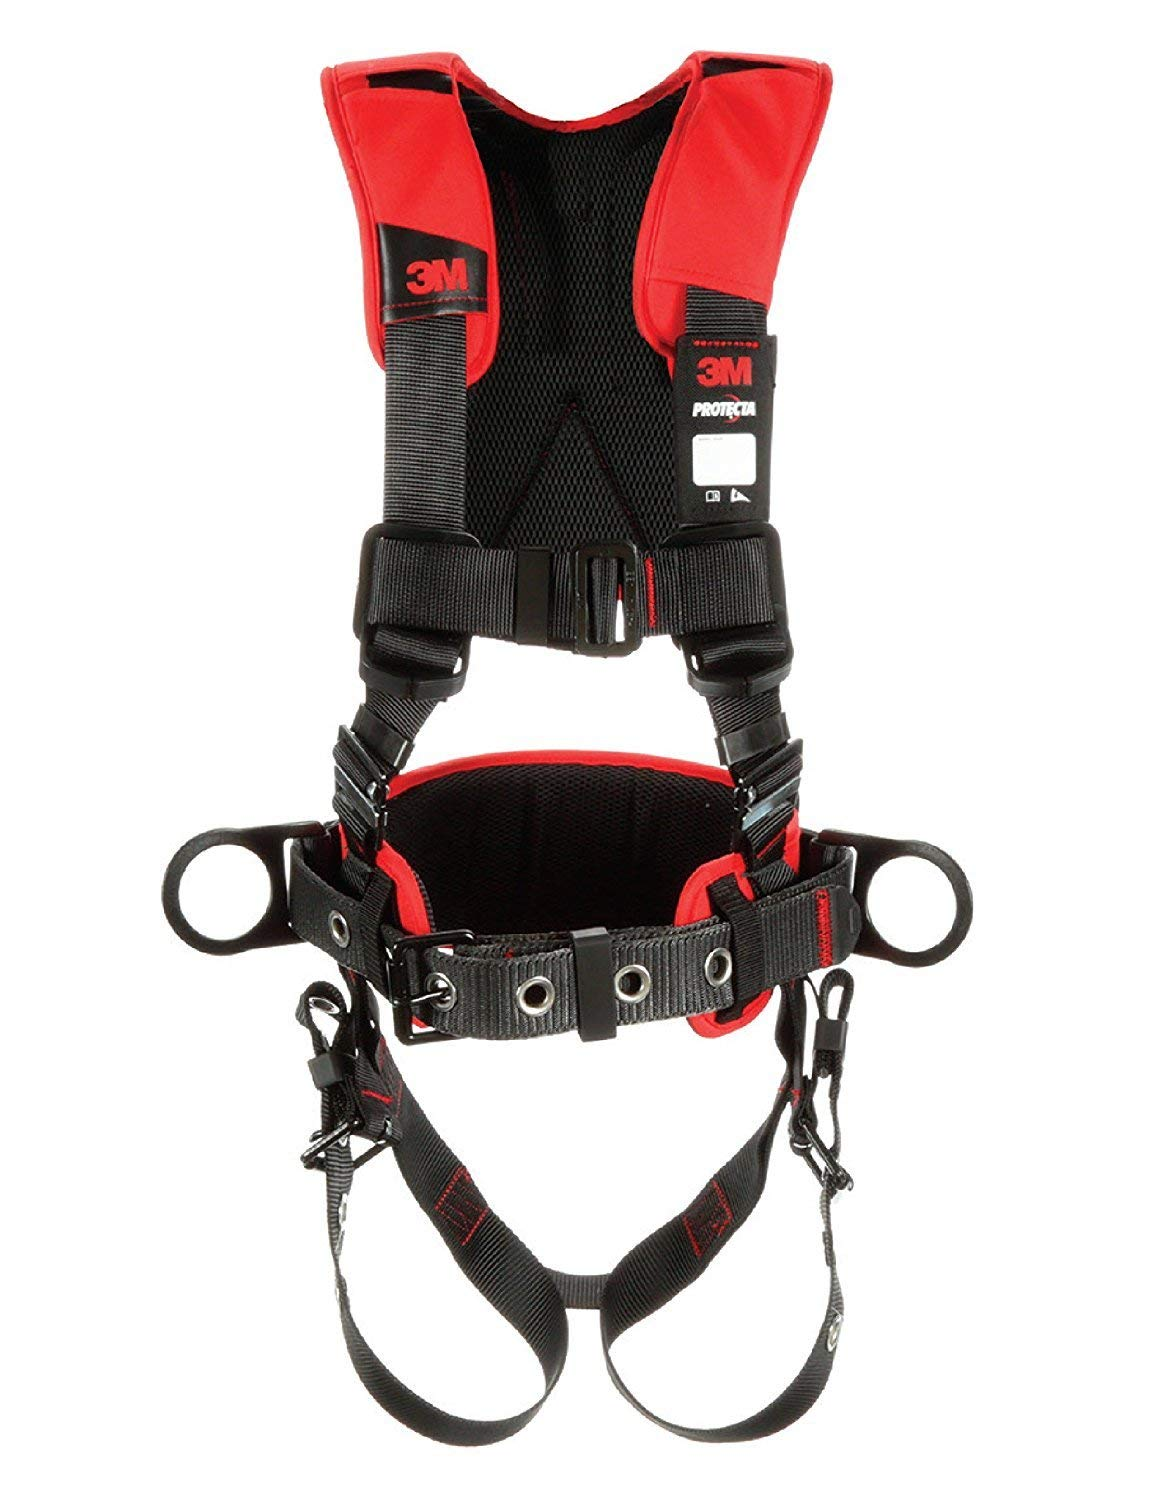 Protecta 1161207 Comfort Construction Style Positioning Harness Size X-Large by ProTecta